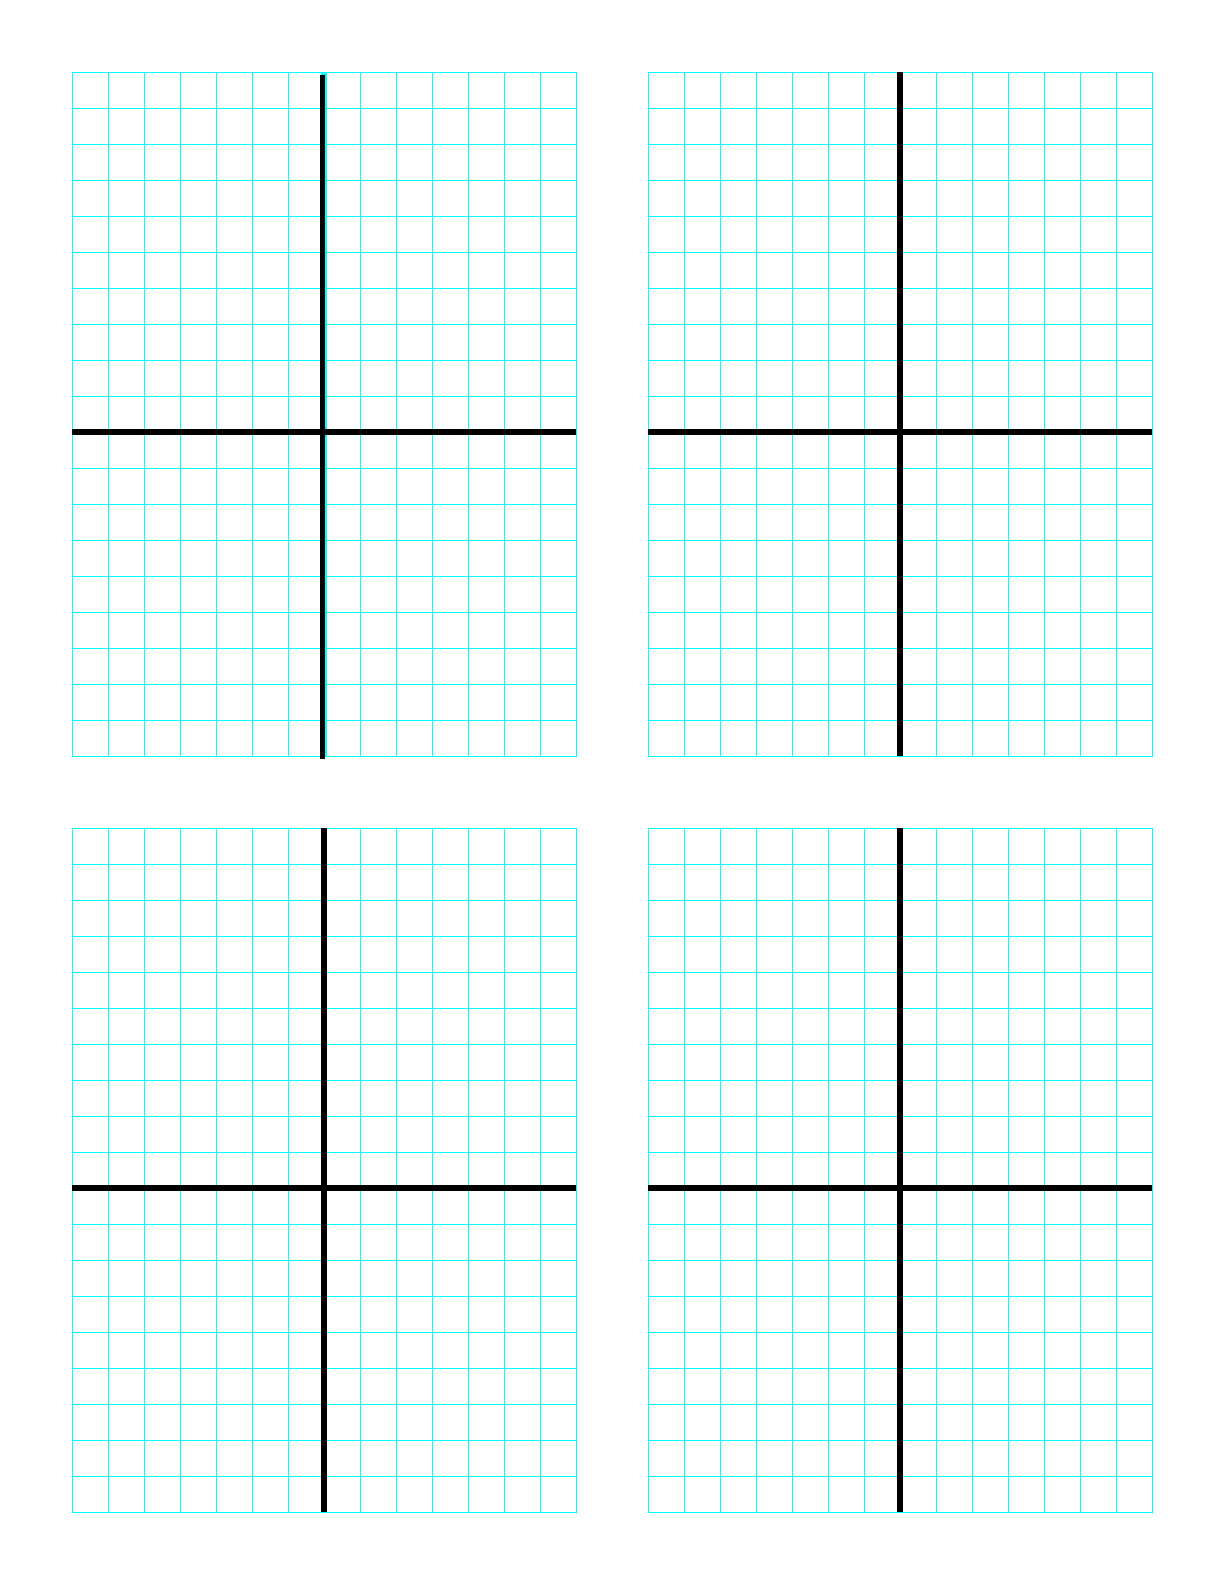 Cartesian Graph Four Per Page Free Download